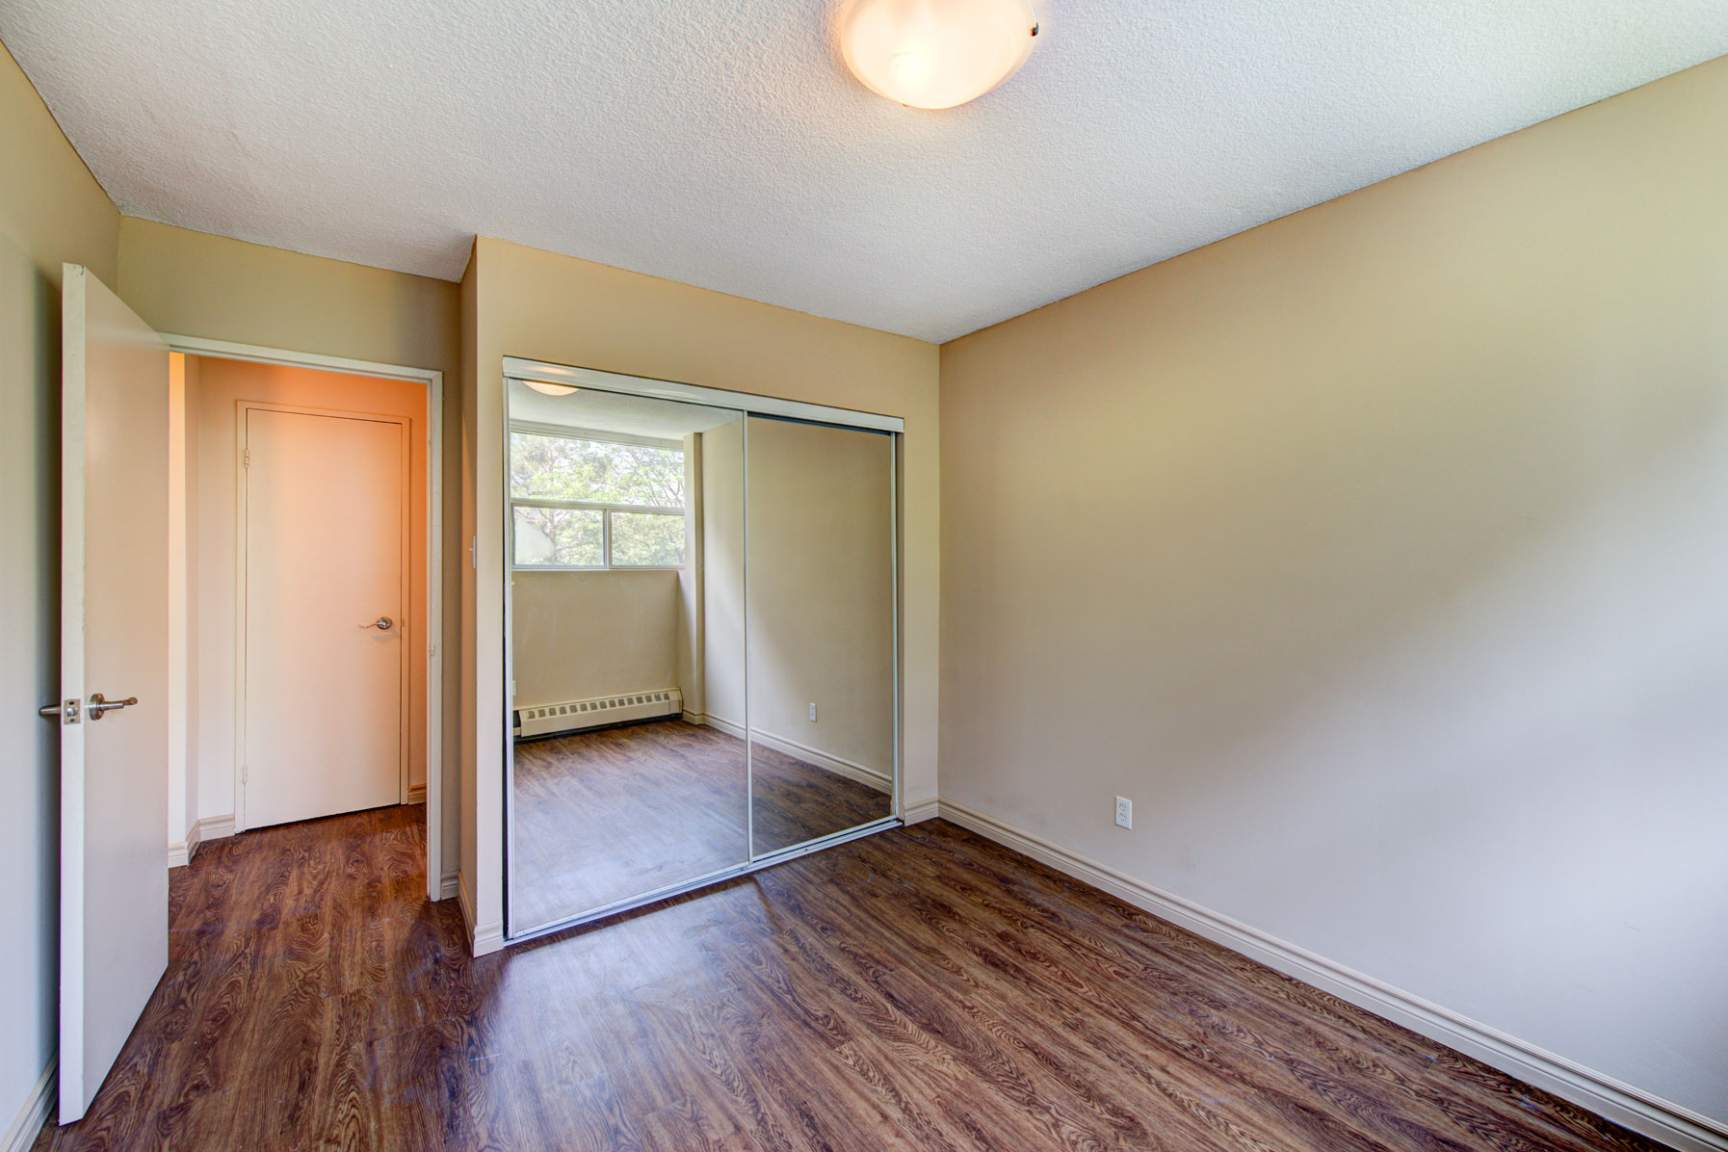 1 bedroom Apartments for rent in Mississauga at Embassy Apartments - Photo 19 - RentersPages – L138718